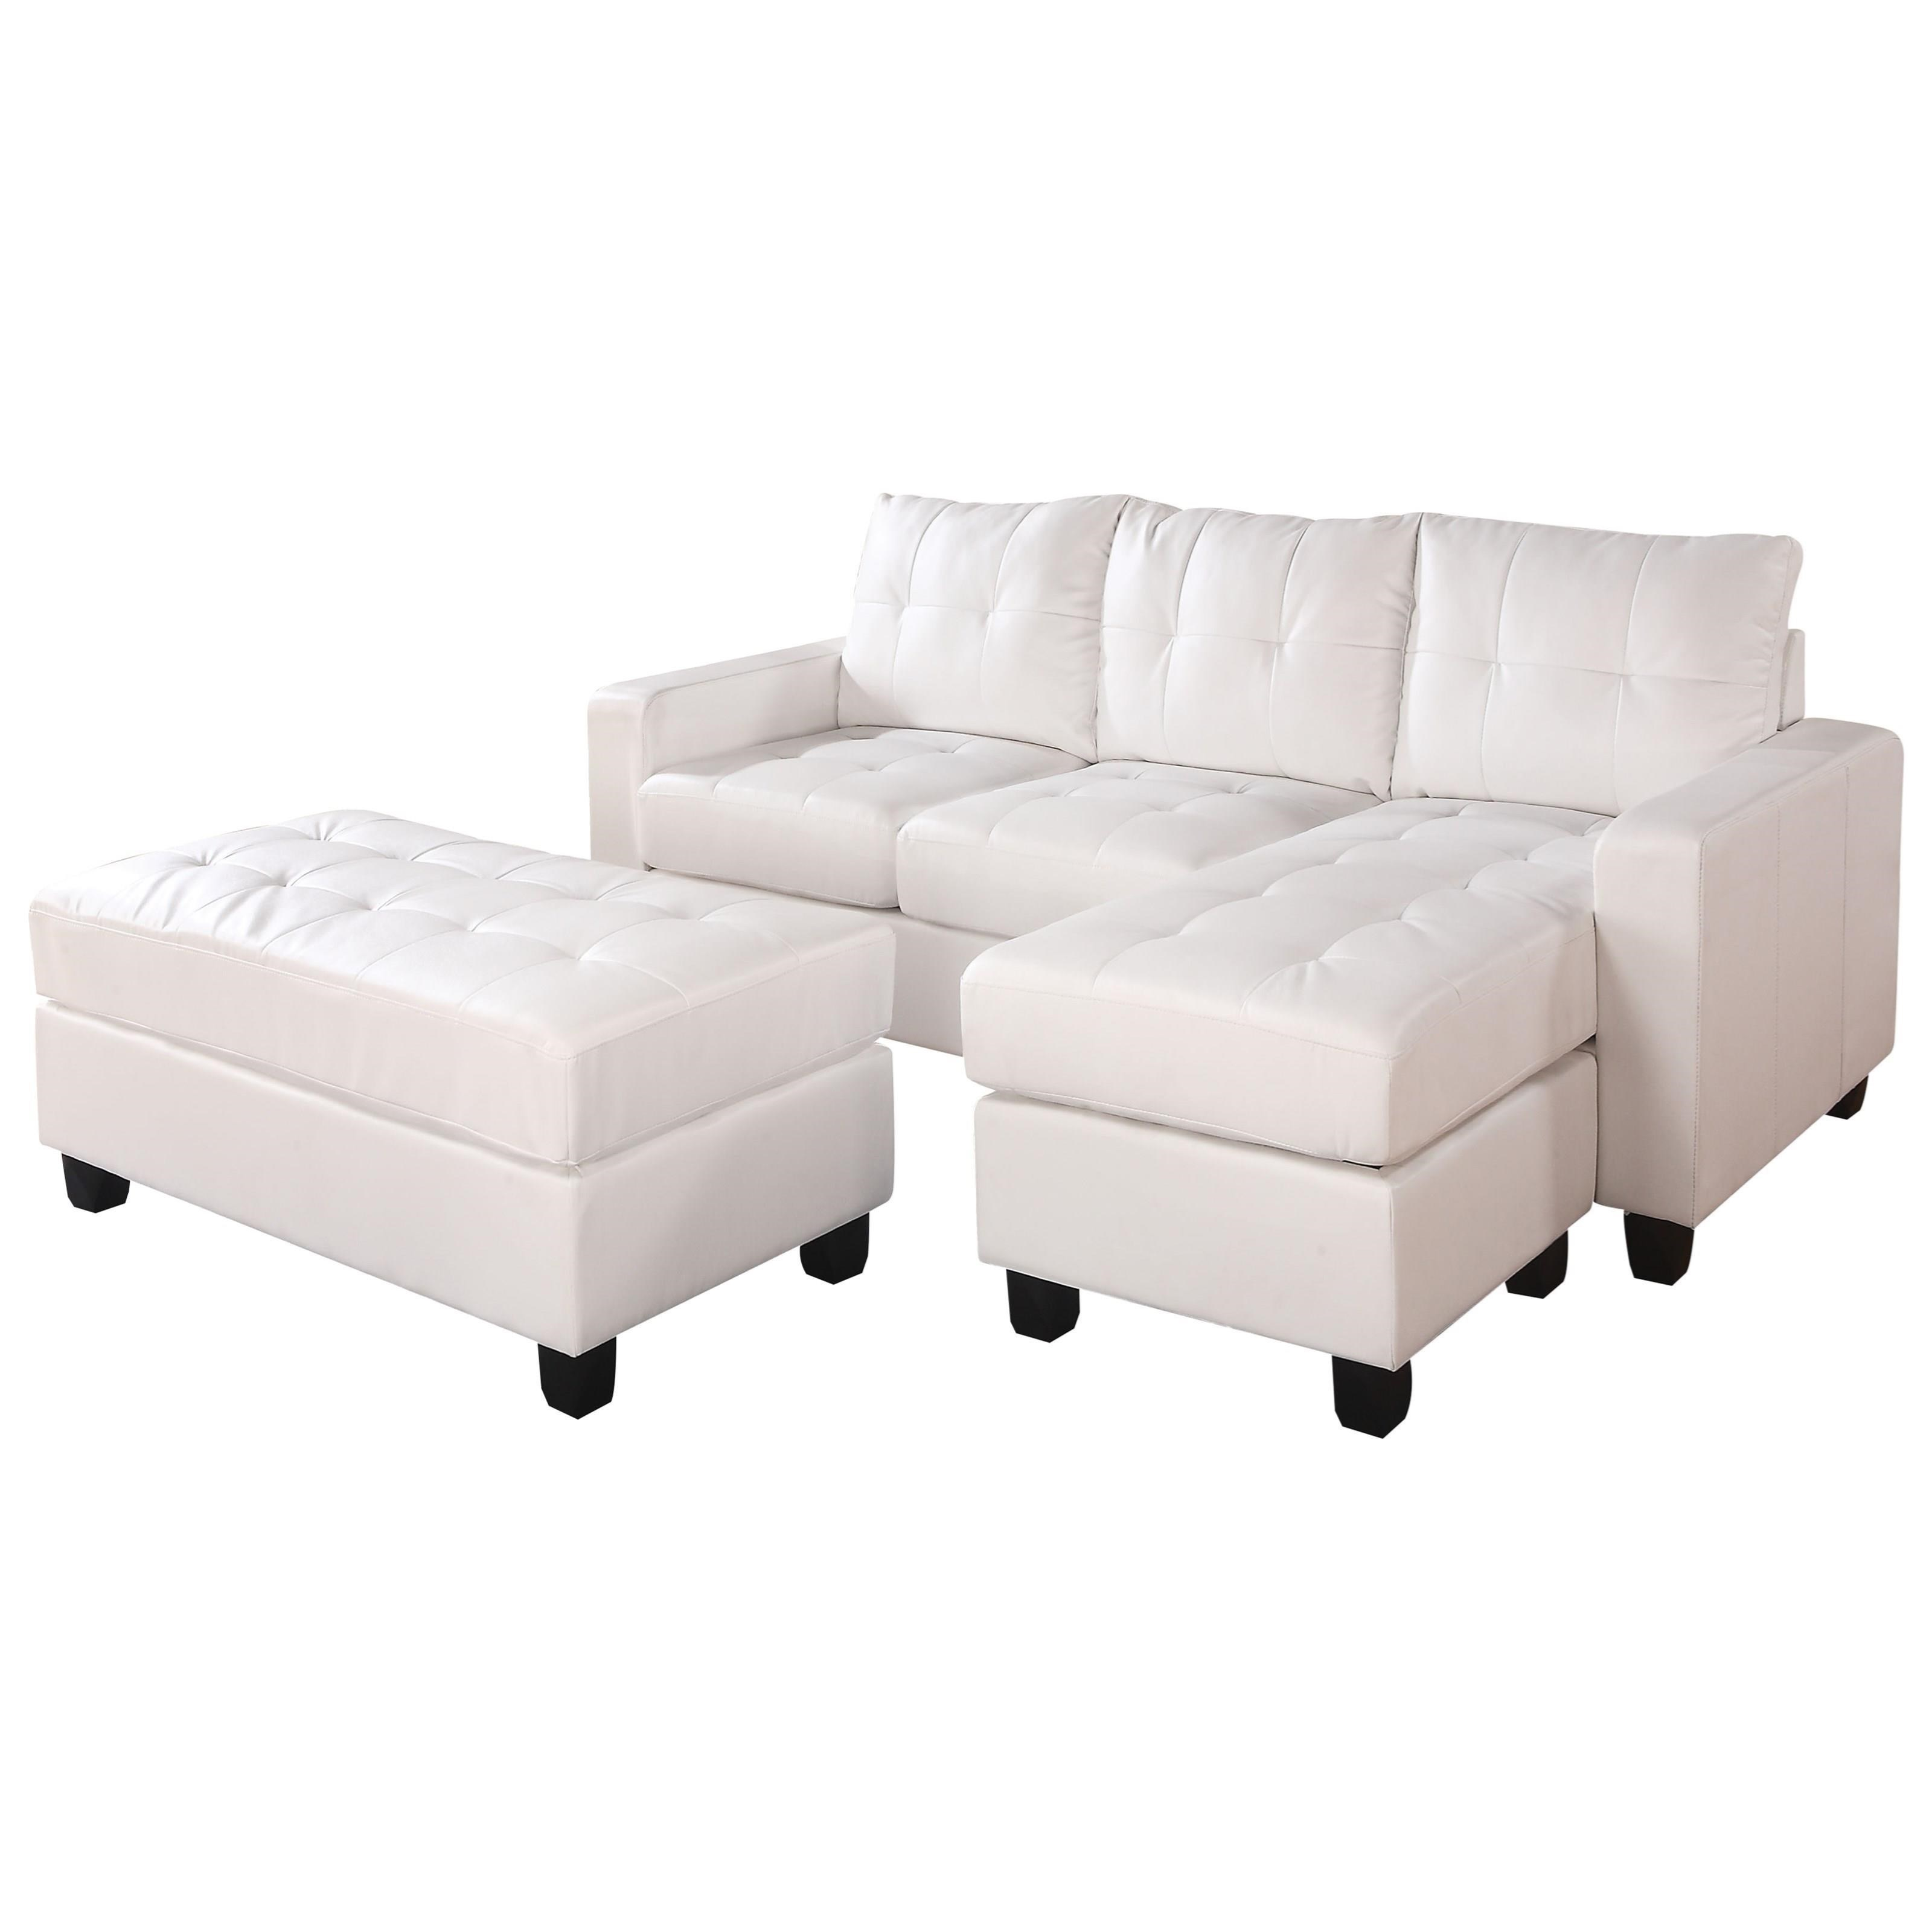 Lyssa Sectional Sofa (Rev. Chaise) w/Ottoman by Acme Furniture at Carolina Direct